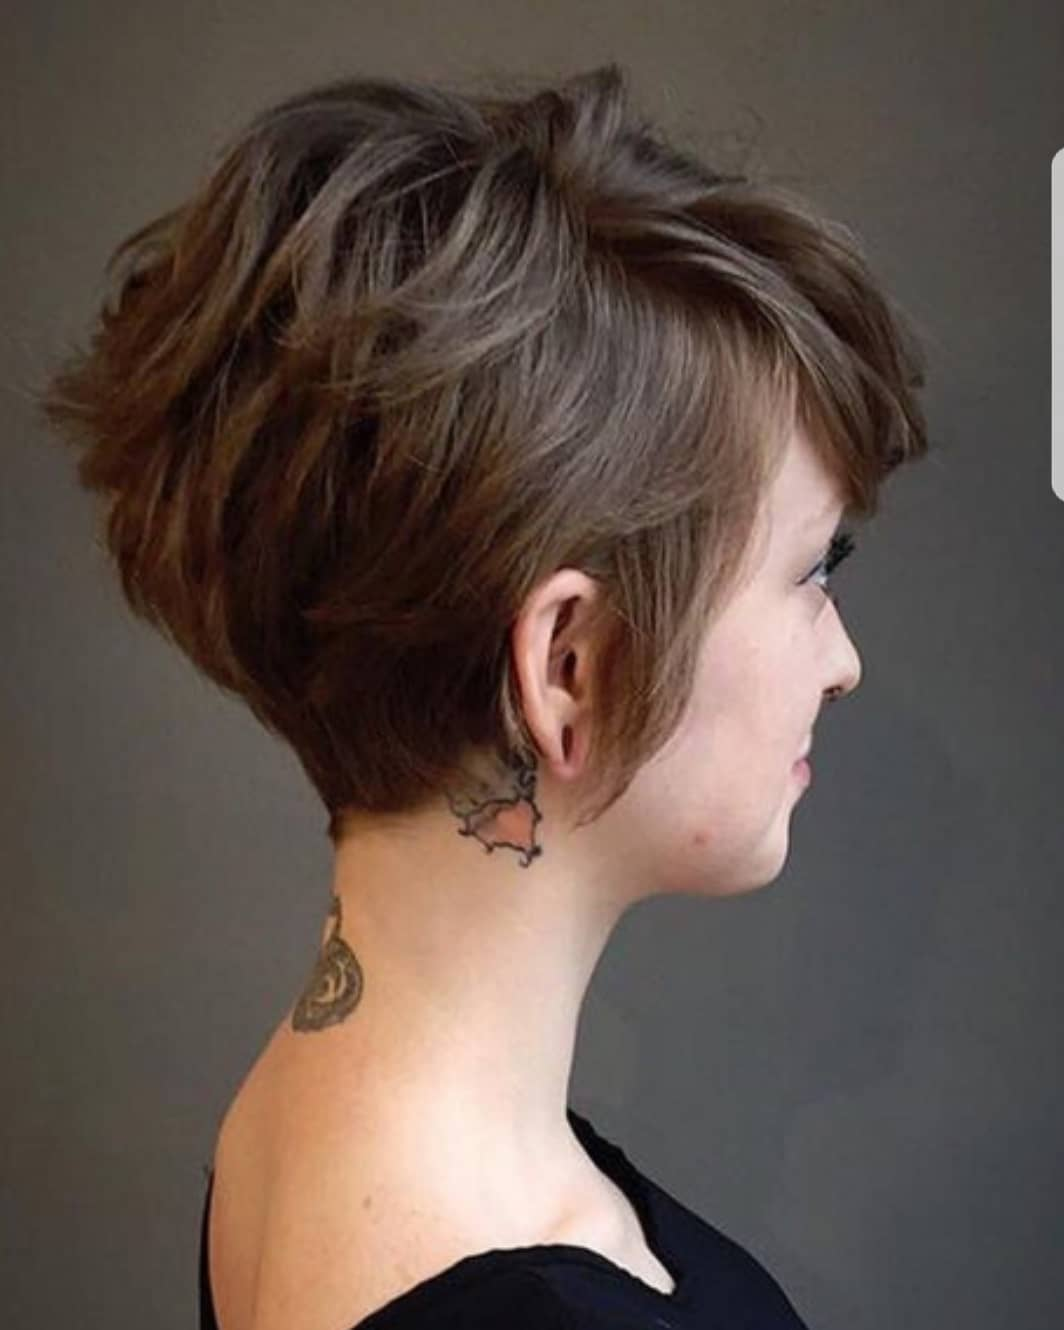 short pixie haircuts for straight hair 10 flattering hairstyles 2019 5622 | latest short straight hairstyles easy short haircuts for girls 9